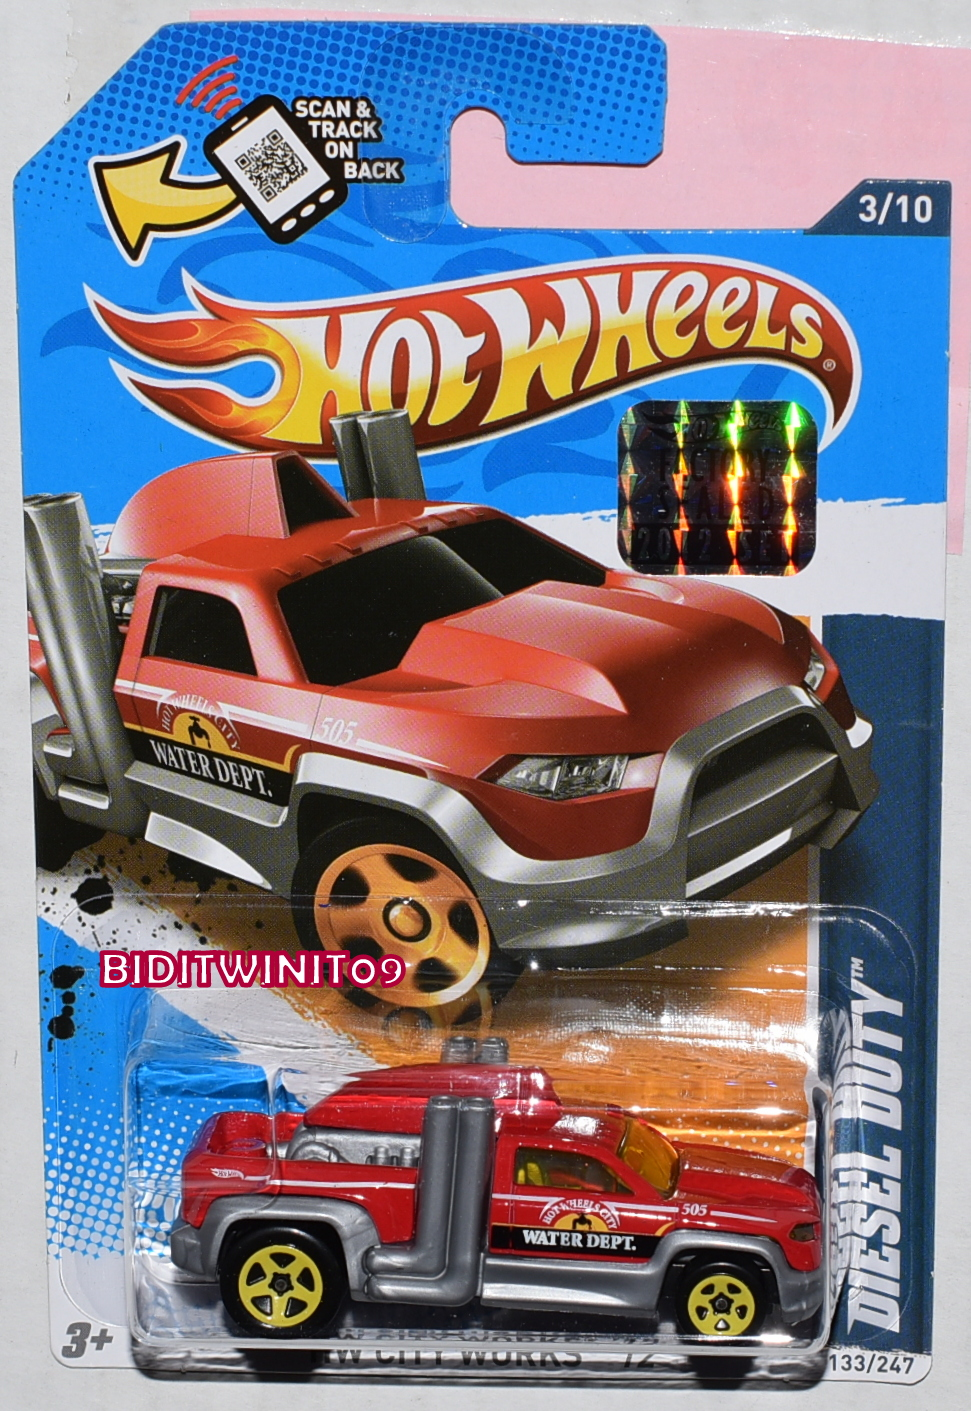 Hot Wheels Coupons 2018 Ariston Hotel Dubrovnik Deals Hotwheels Datsun 620 Red Product Description Super Treasure Hunt Porsche 9345for The Mainline Is Numbered 1 Through 365 With Color Variations